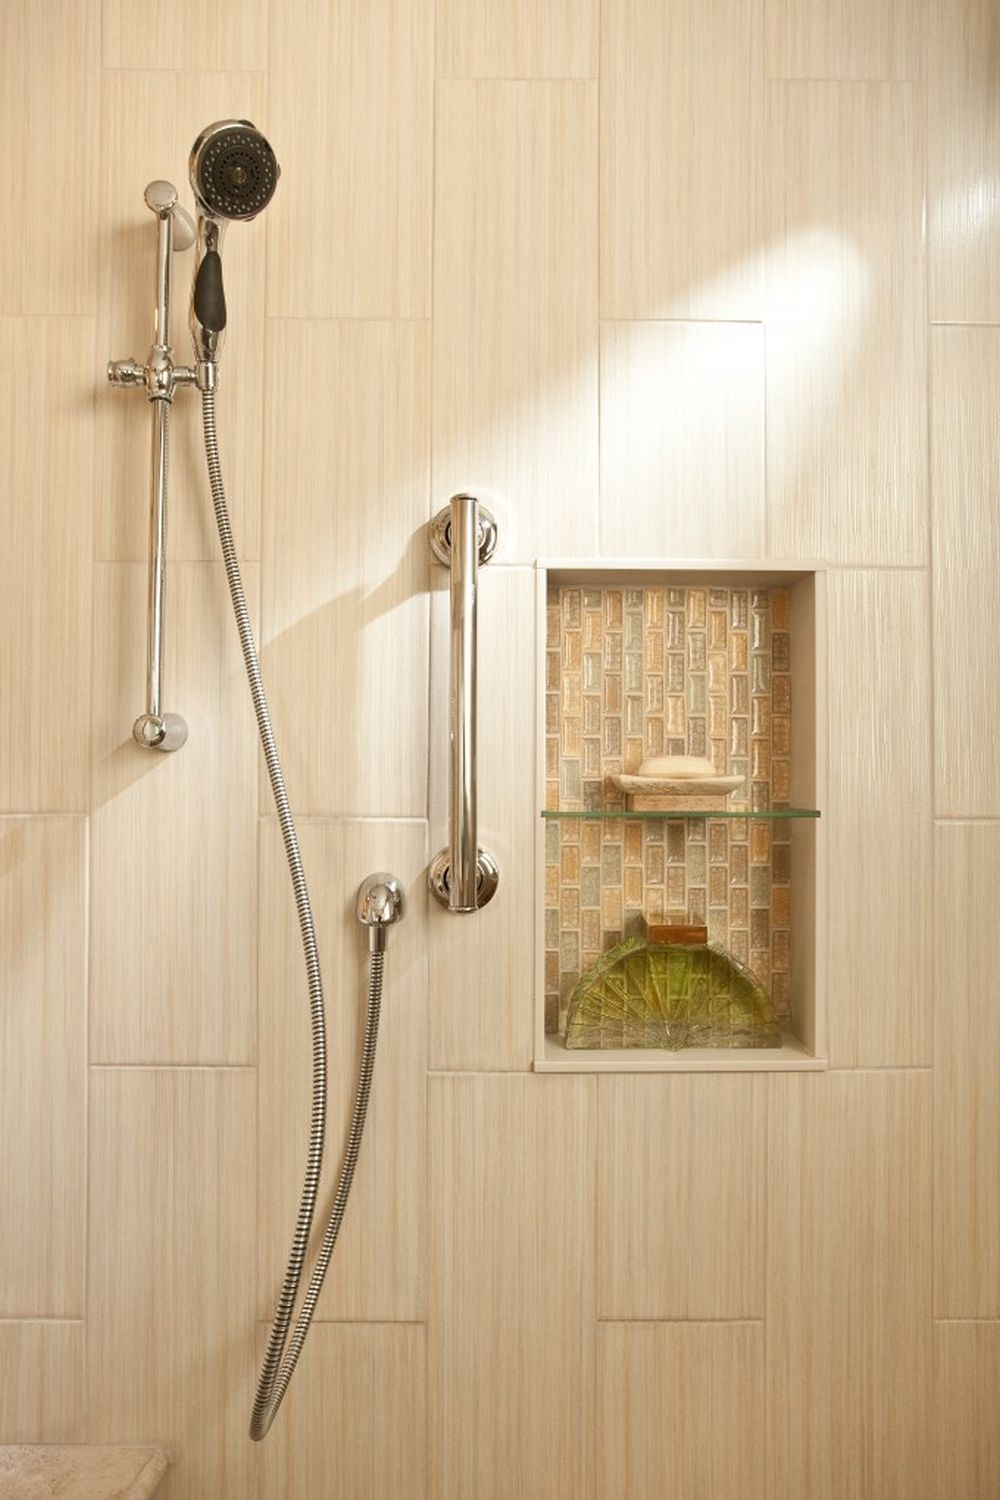 Bars In Your House shower grab bar placement diagram how to install bathroom safety bars in your  house